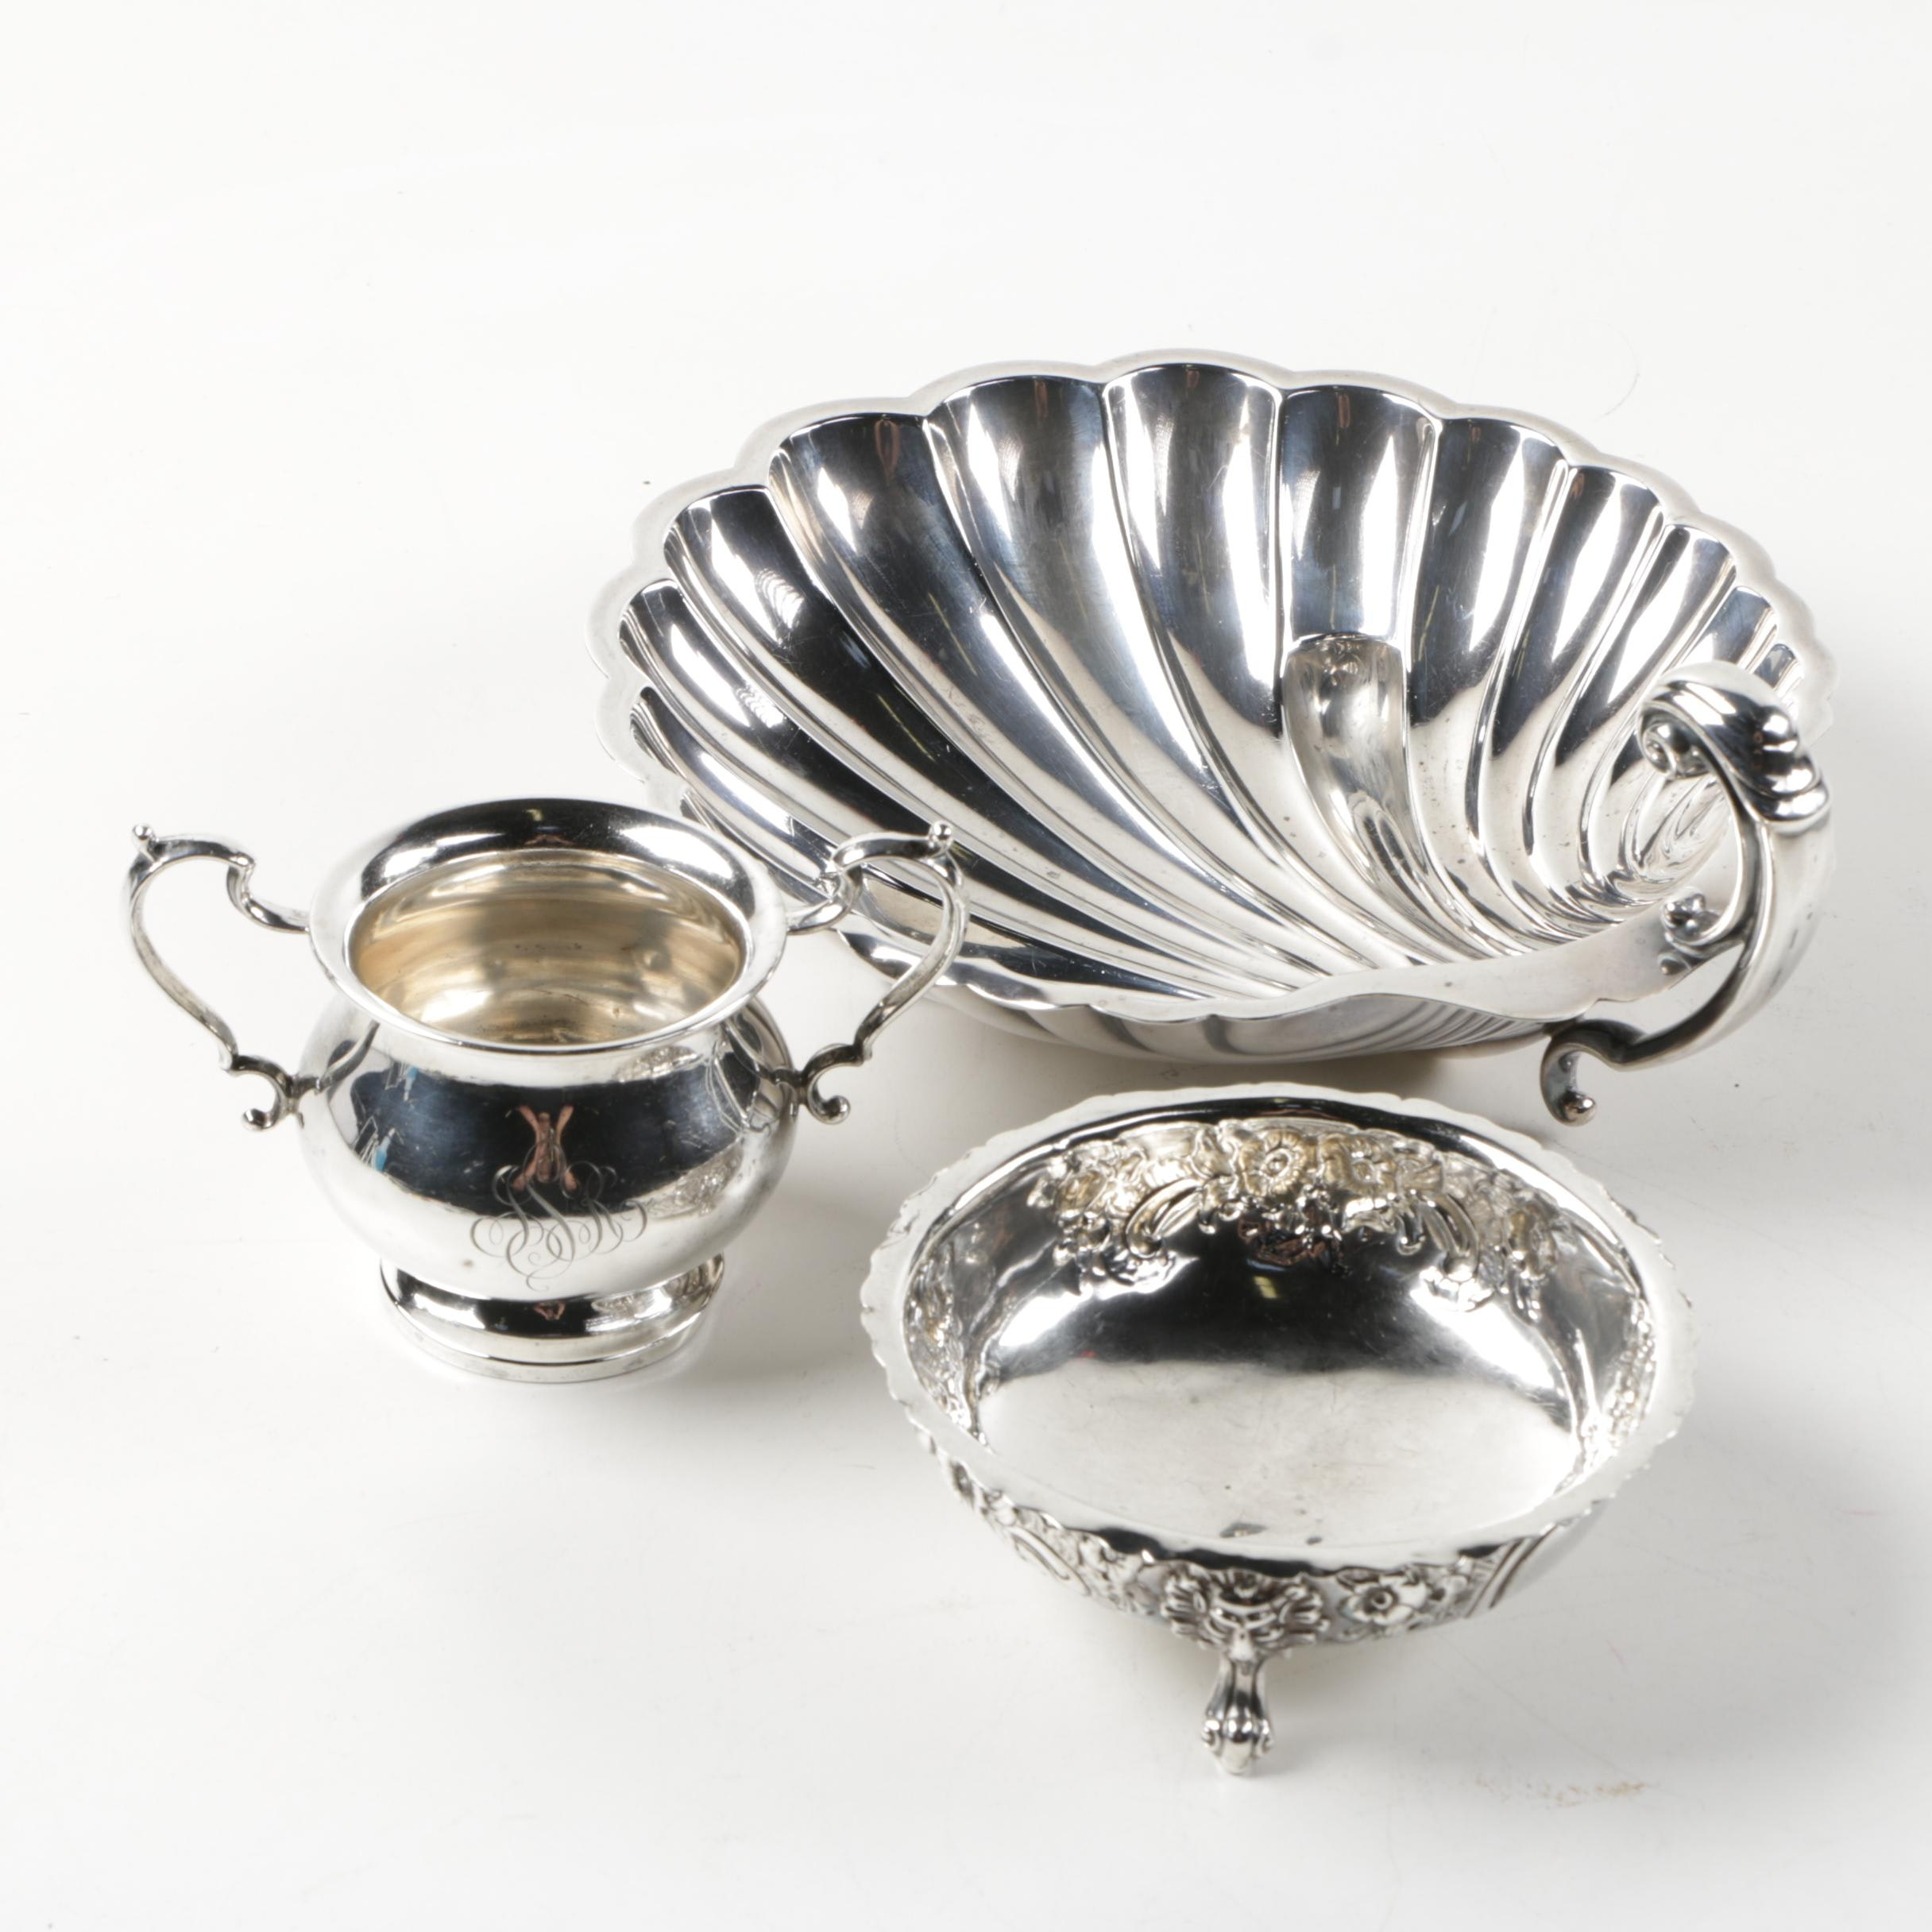 1860 Robert Harper Sterling Bowl with Other Sterling Silver Pieces